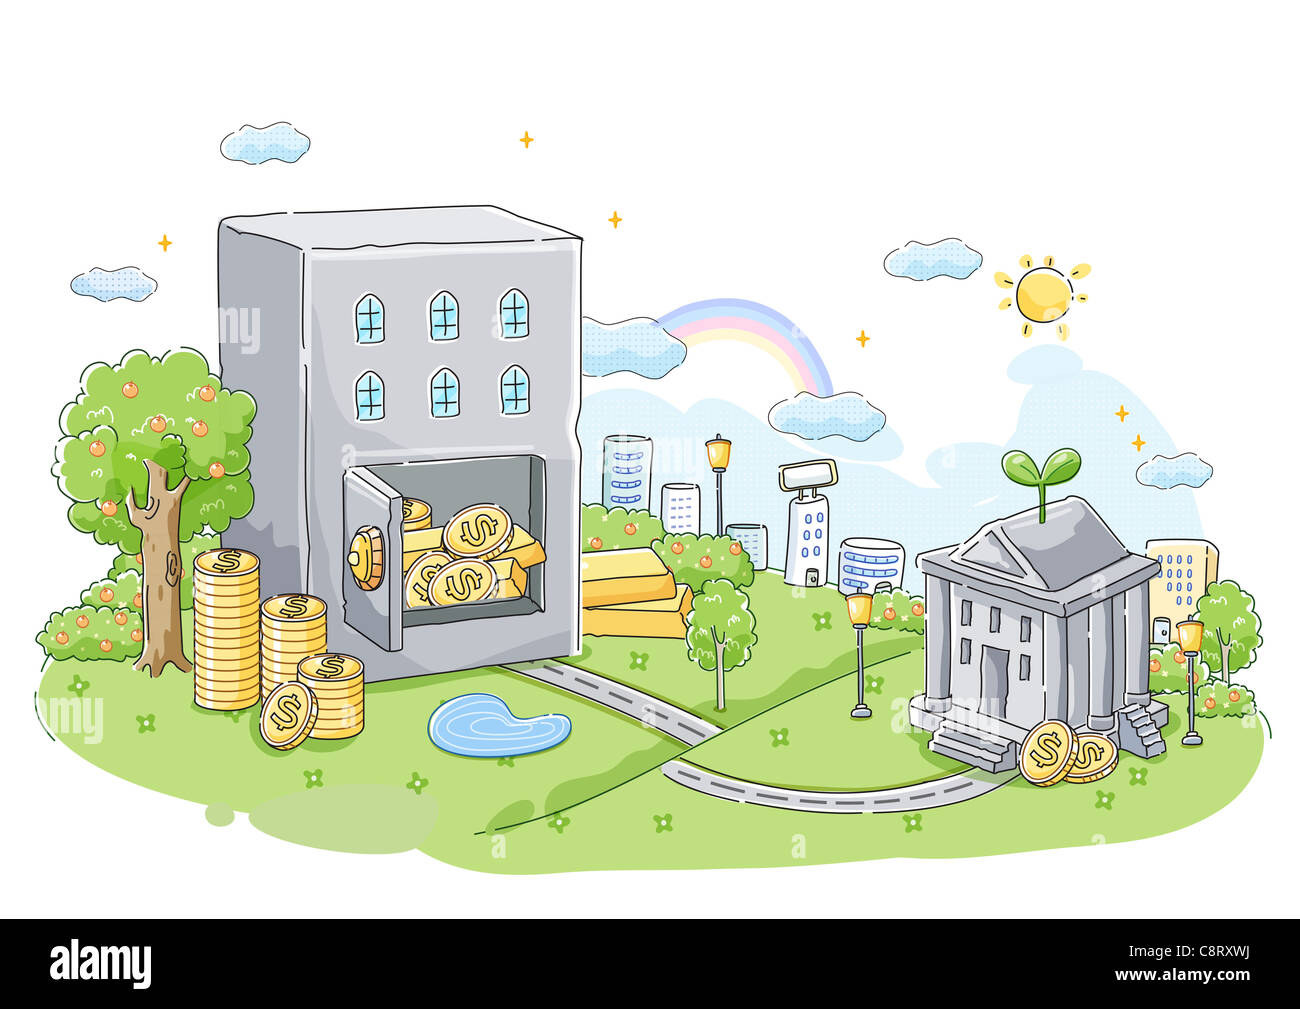 Concept of banking and savings - Stock Image